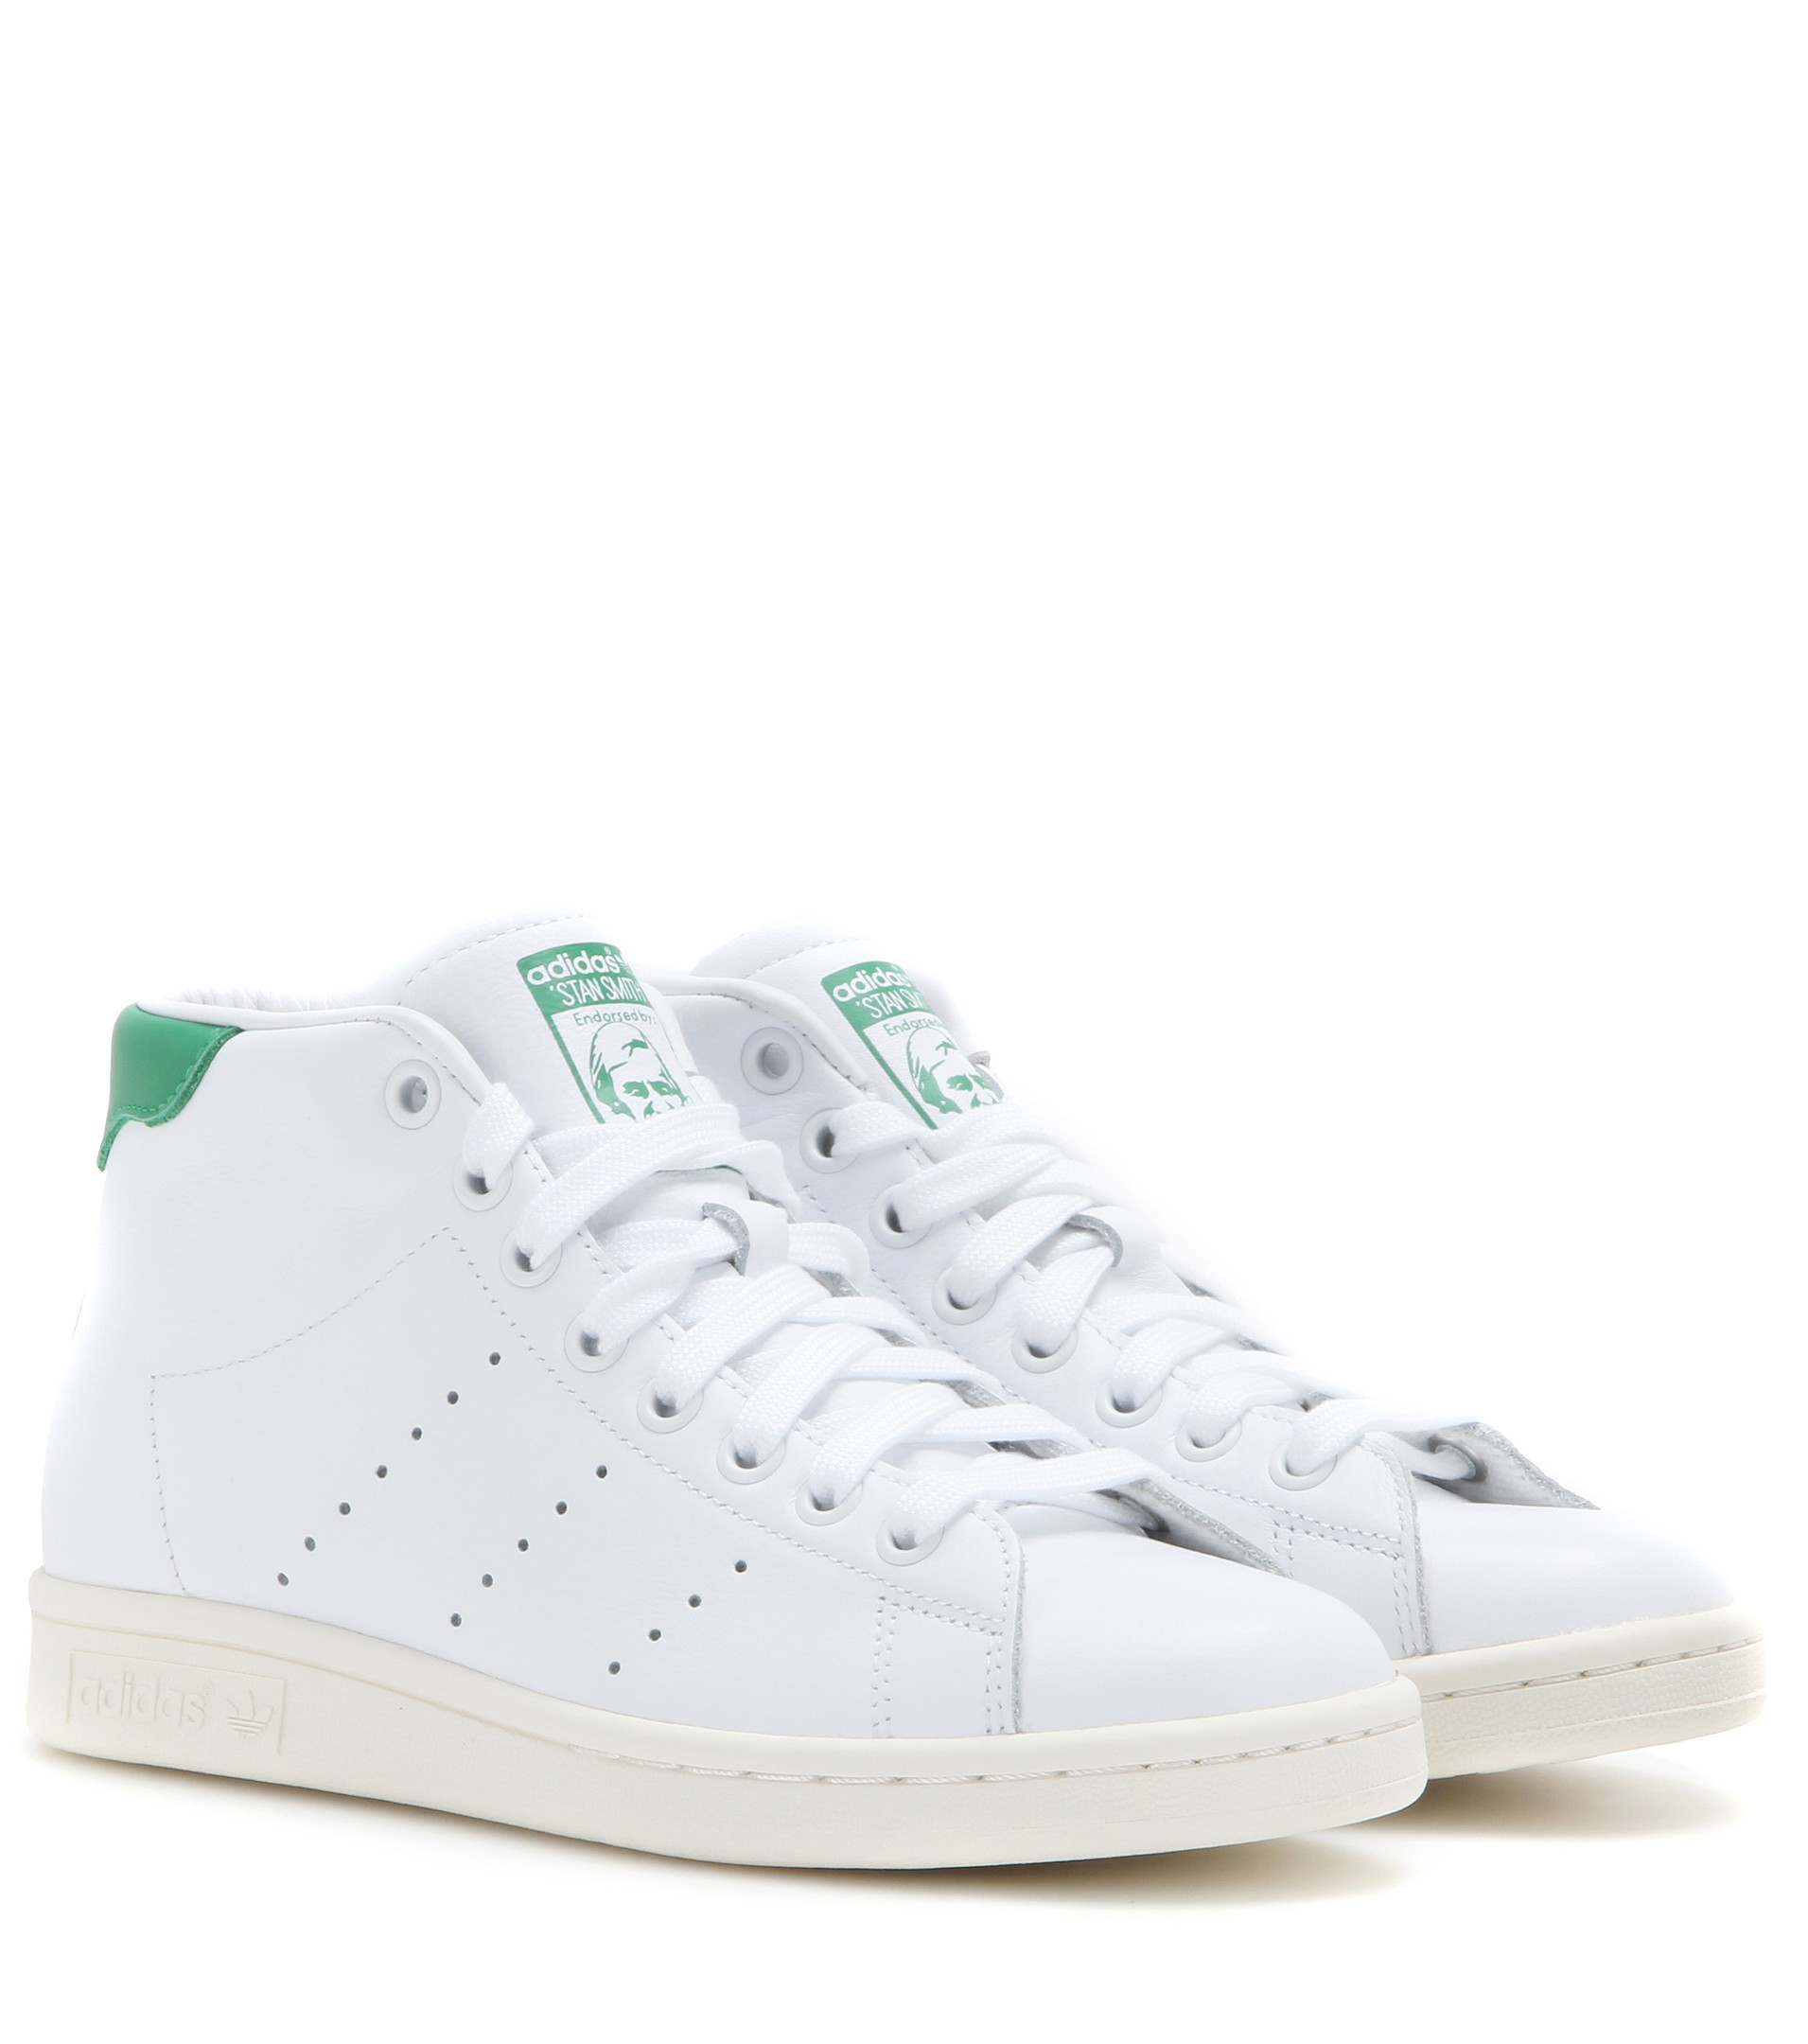 shoes, sneakers, sneakers, white, nike, adidas, high tops